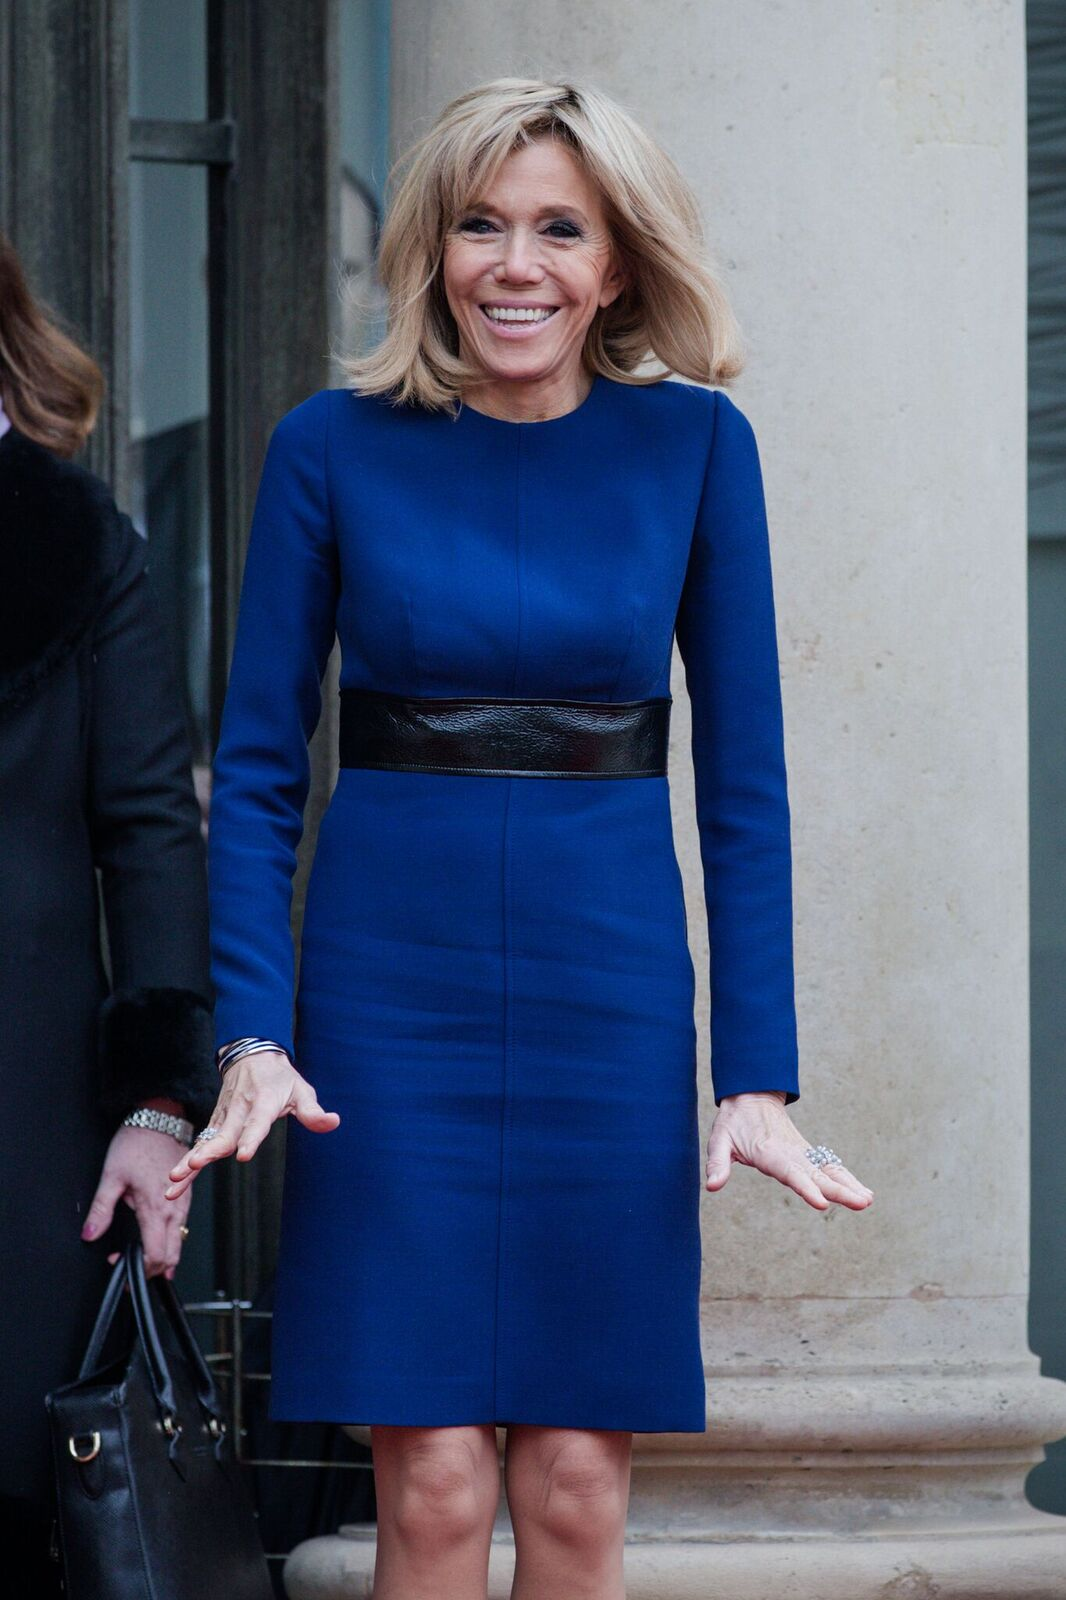 Brigitte Macron à l'Elysée pour une réunion le 19 mars 2018 à Paris, France. | Photo : Getty Images